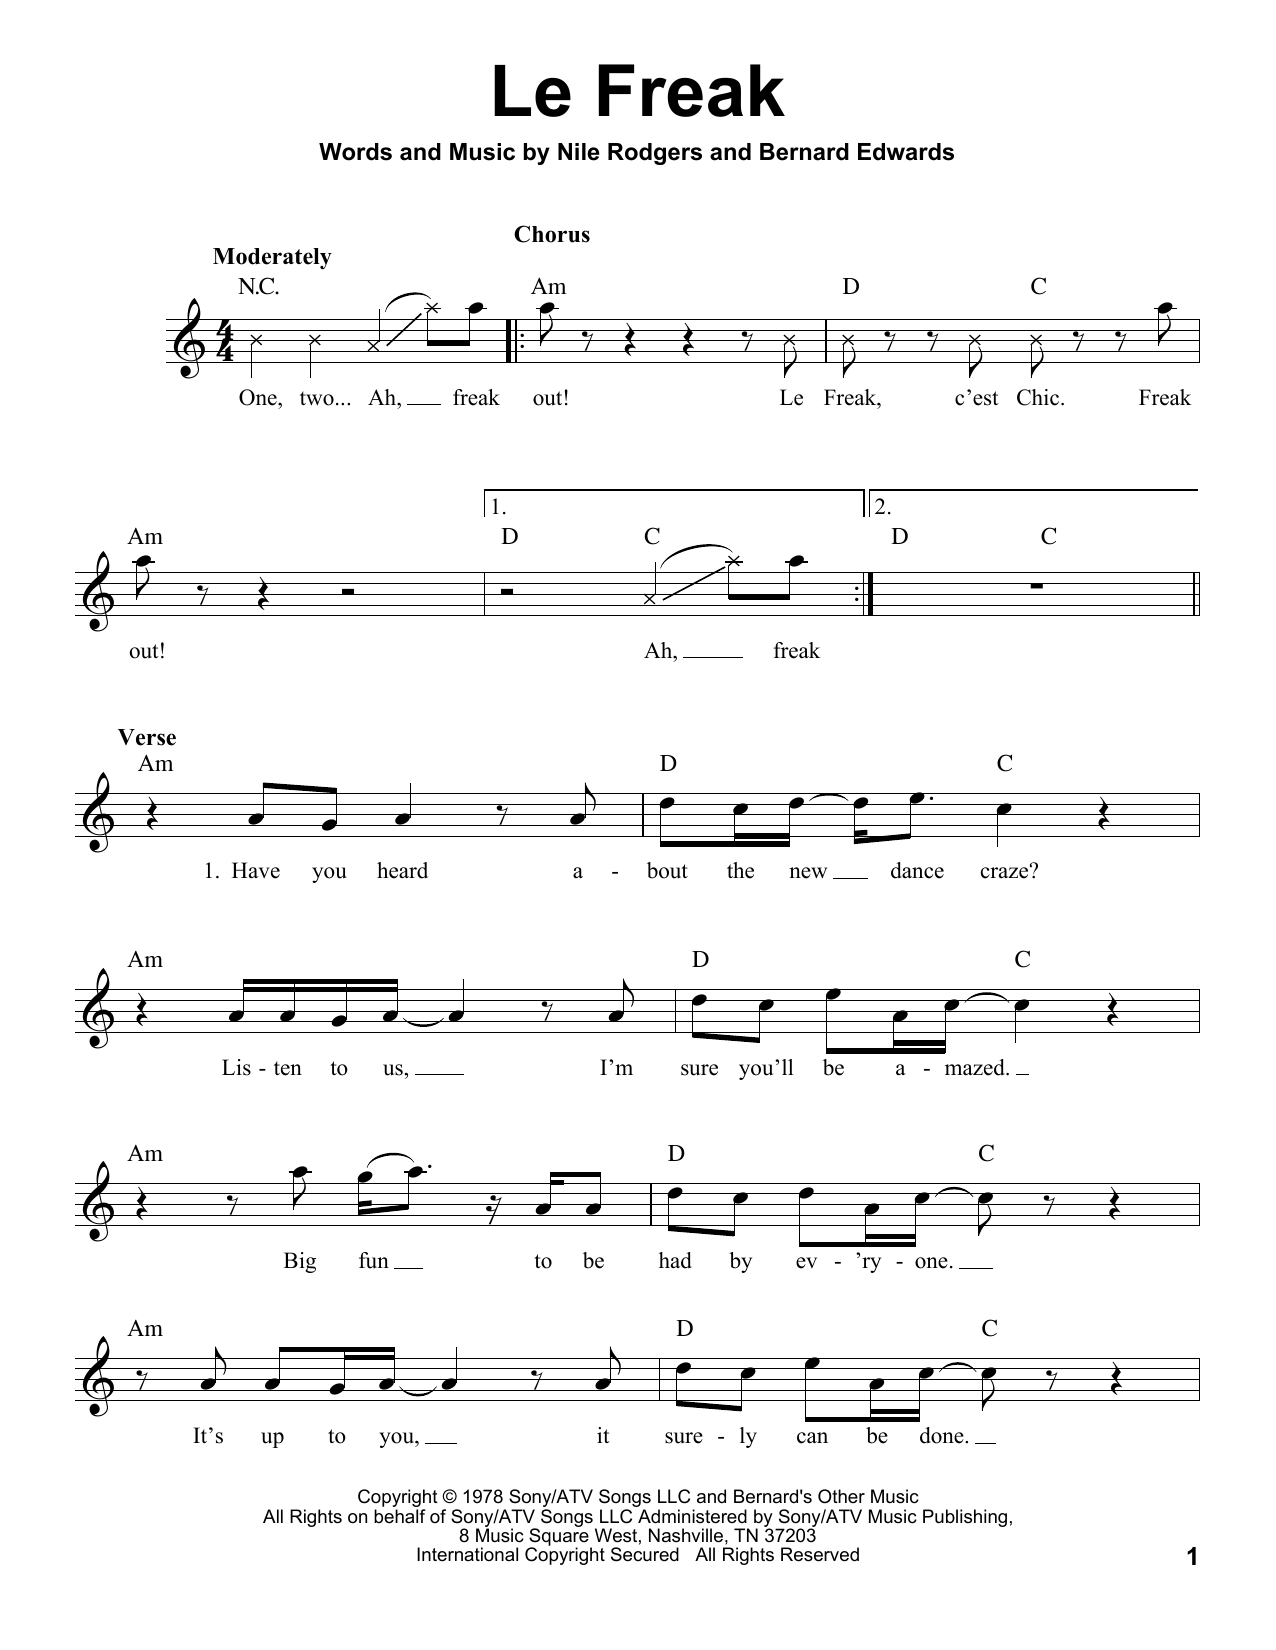 Chic Le Freak Sheet Music Notes Chords Printable Pop Voice